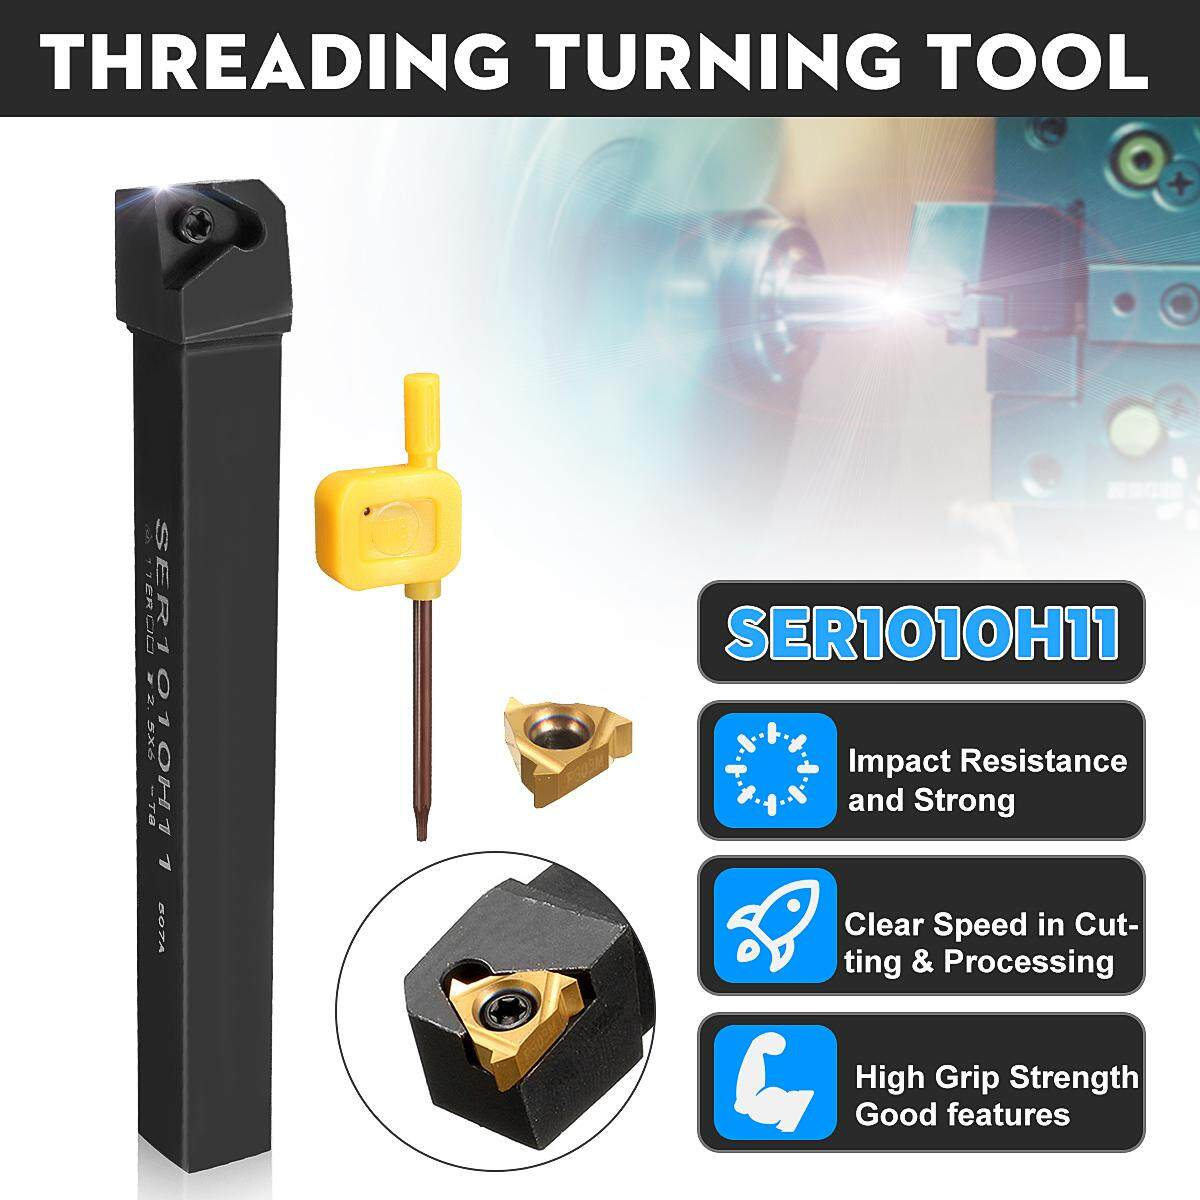 Drillpro SER1010H11 Threading Turning Tool Holder with 11ER A60 Carbide Insert